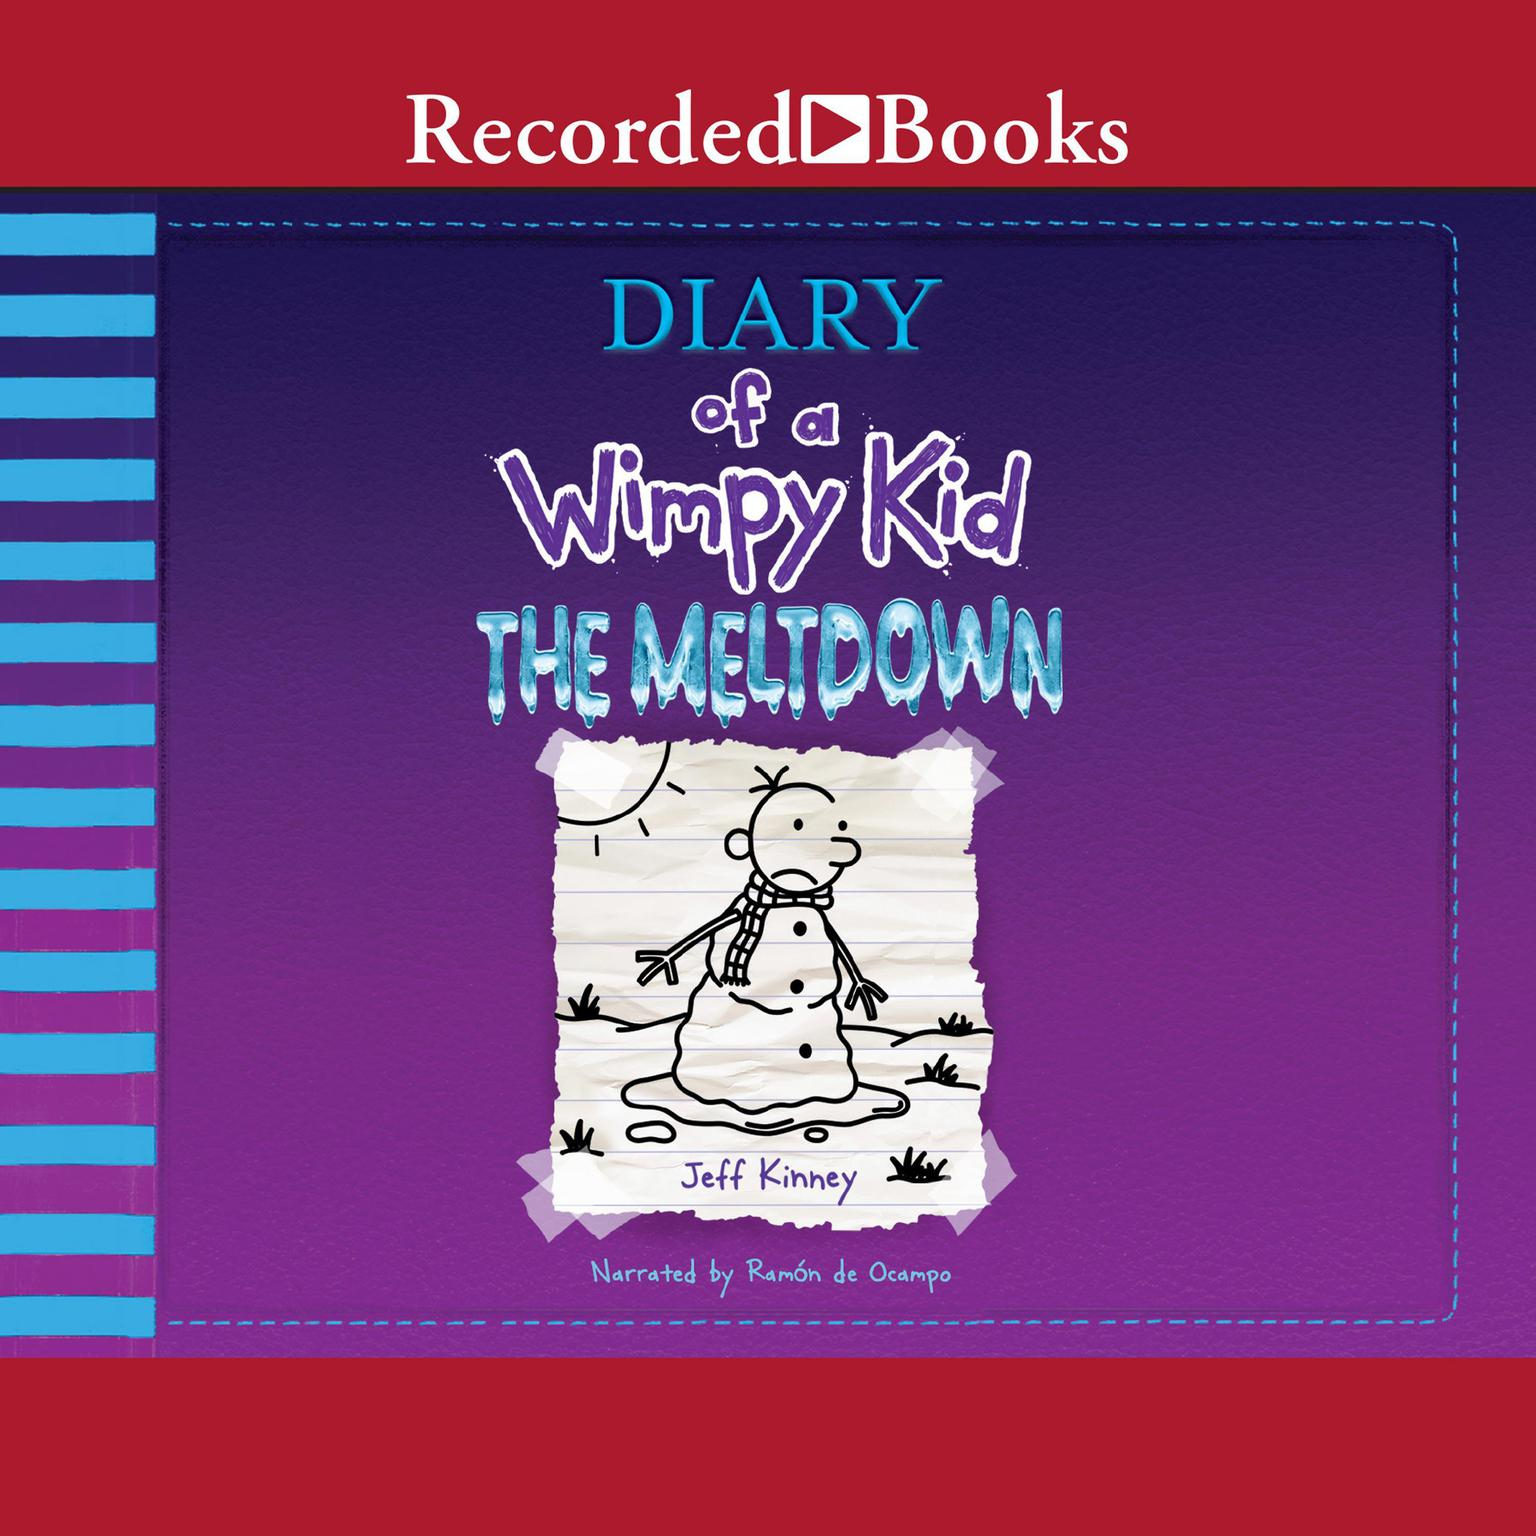 Diary Of A Wimpy Kid The Meltdown Audiobook Listen Instantly